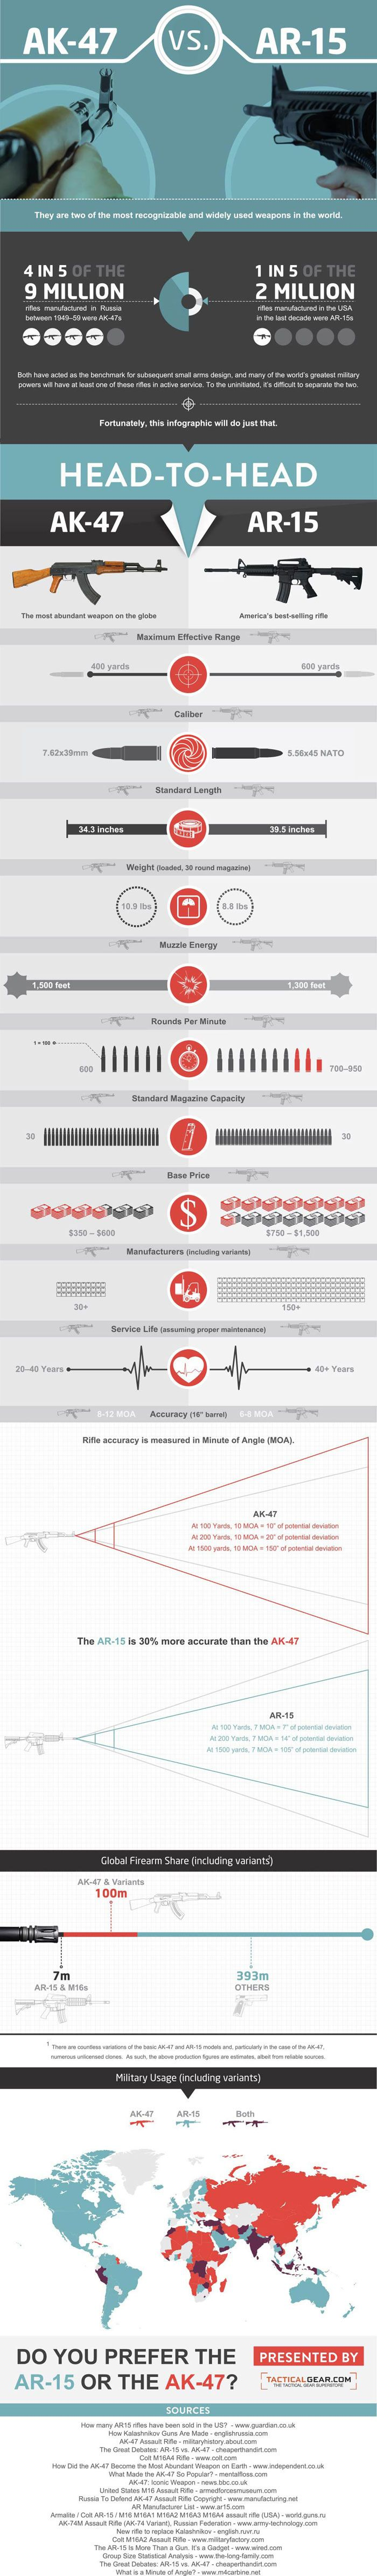 AK-47 vs. AR-15 Infographic cool custom body armor gear like bulletproof backpacks from Made in USA http://bullet-proof-vest-shop.com